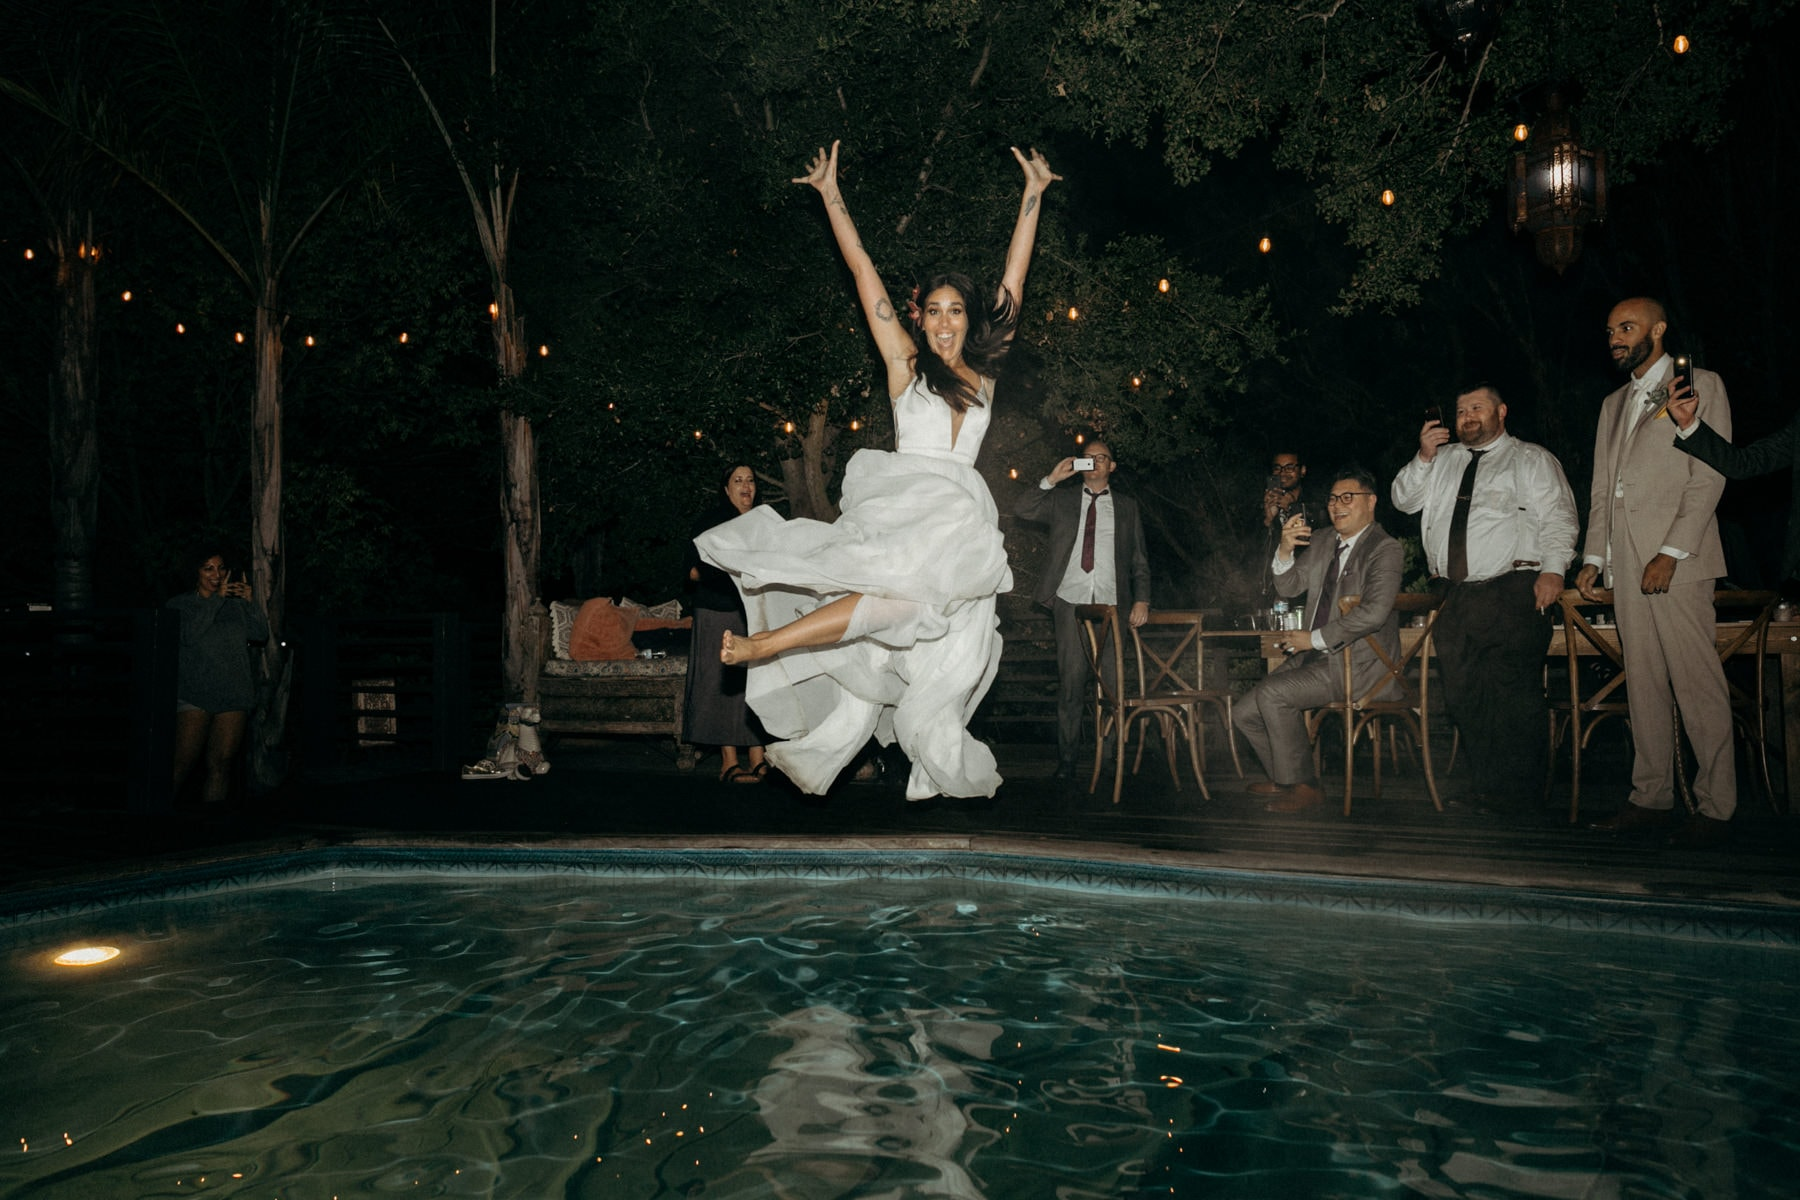 bride jumping in pool with wedding dress